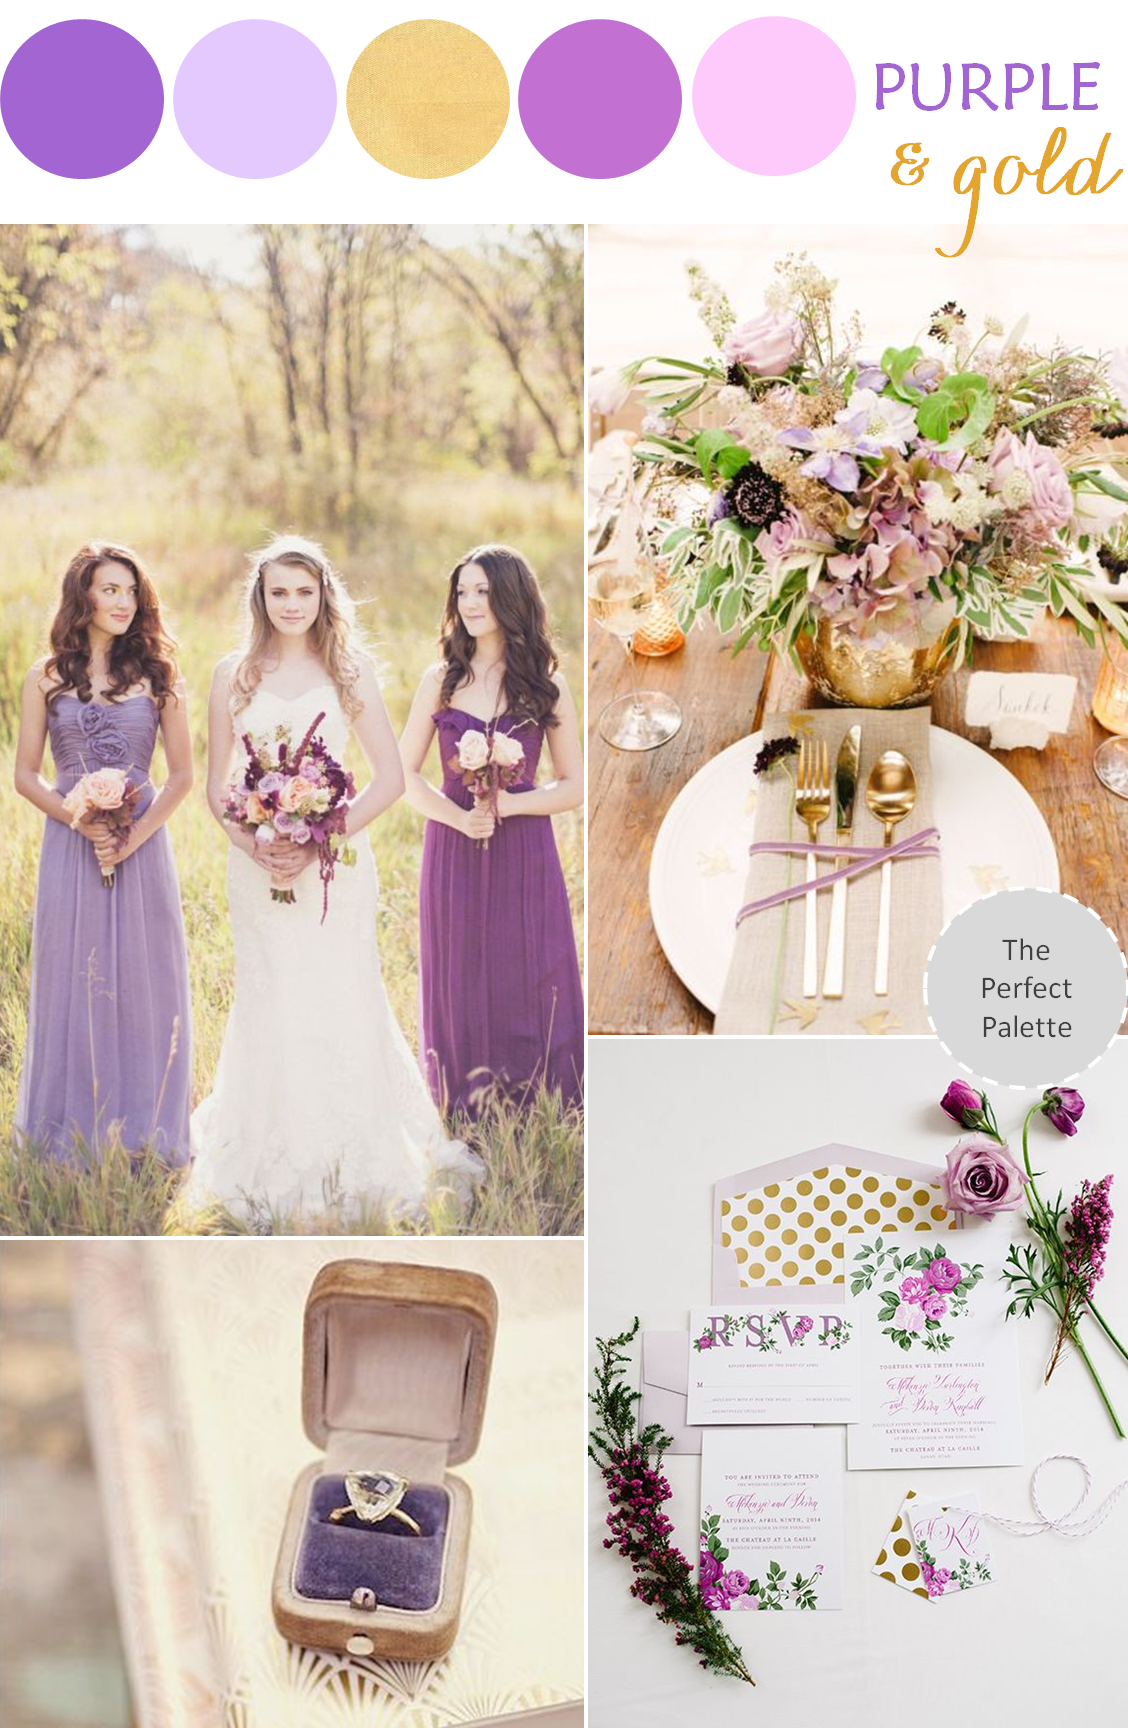 Wedding Style Purple Gold Www Theperfectpalette Color Ideas For Weddings Parties